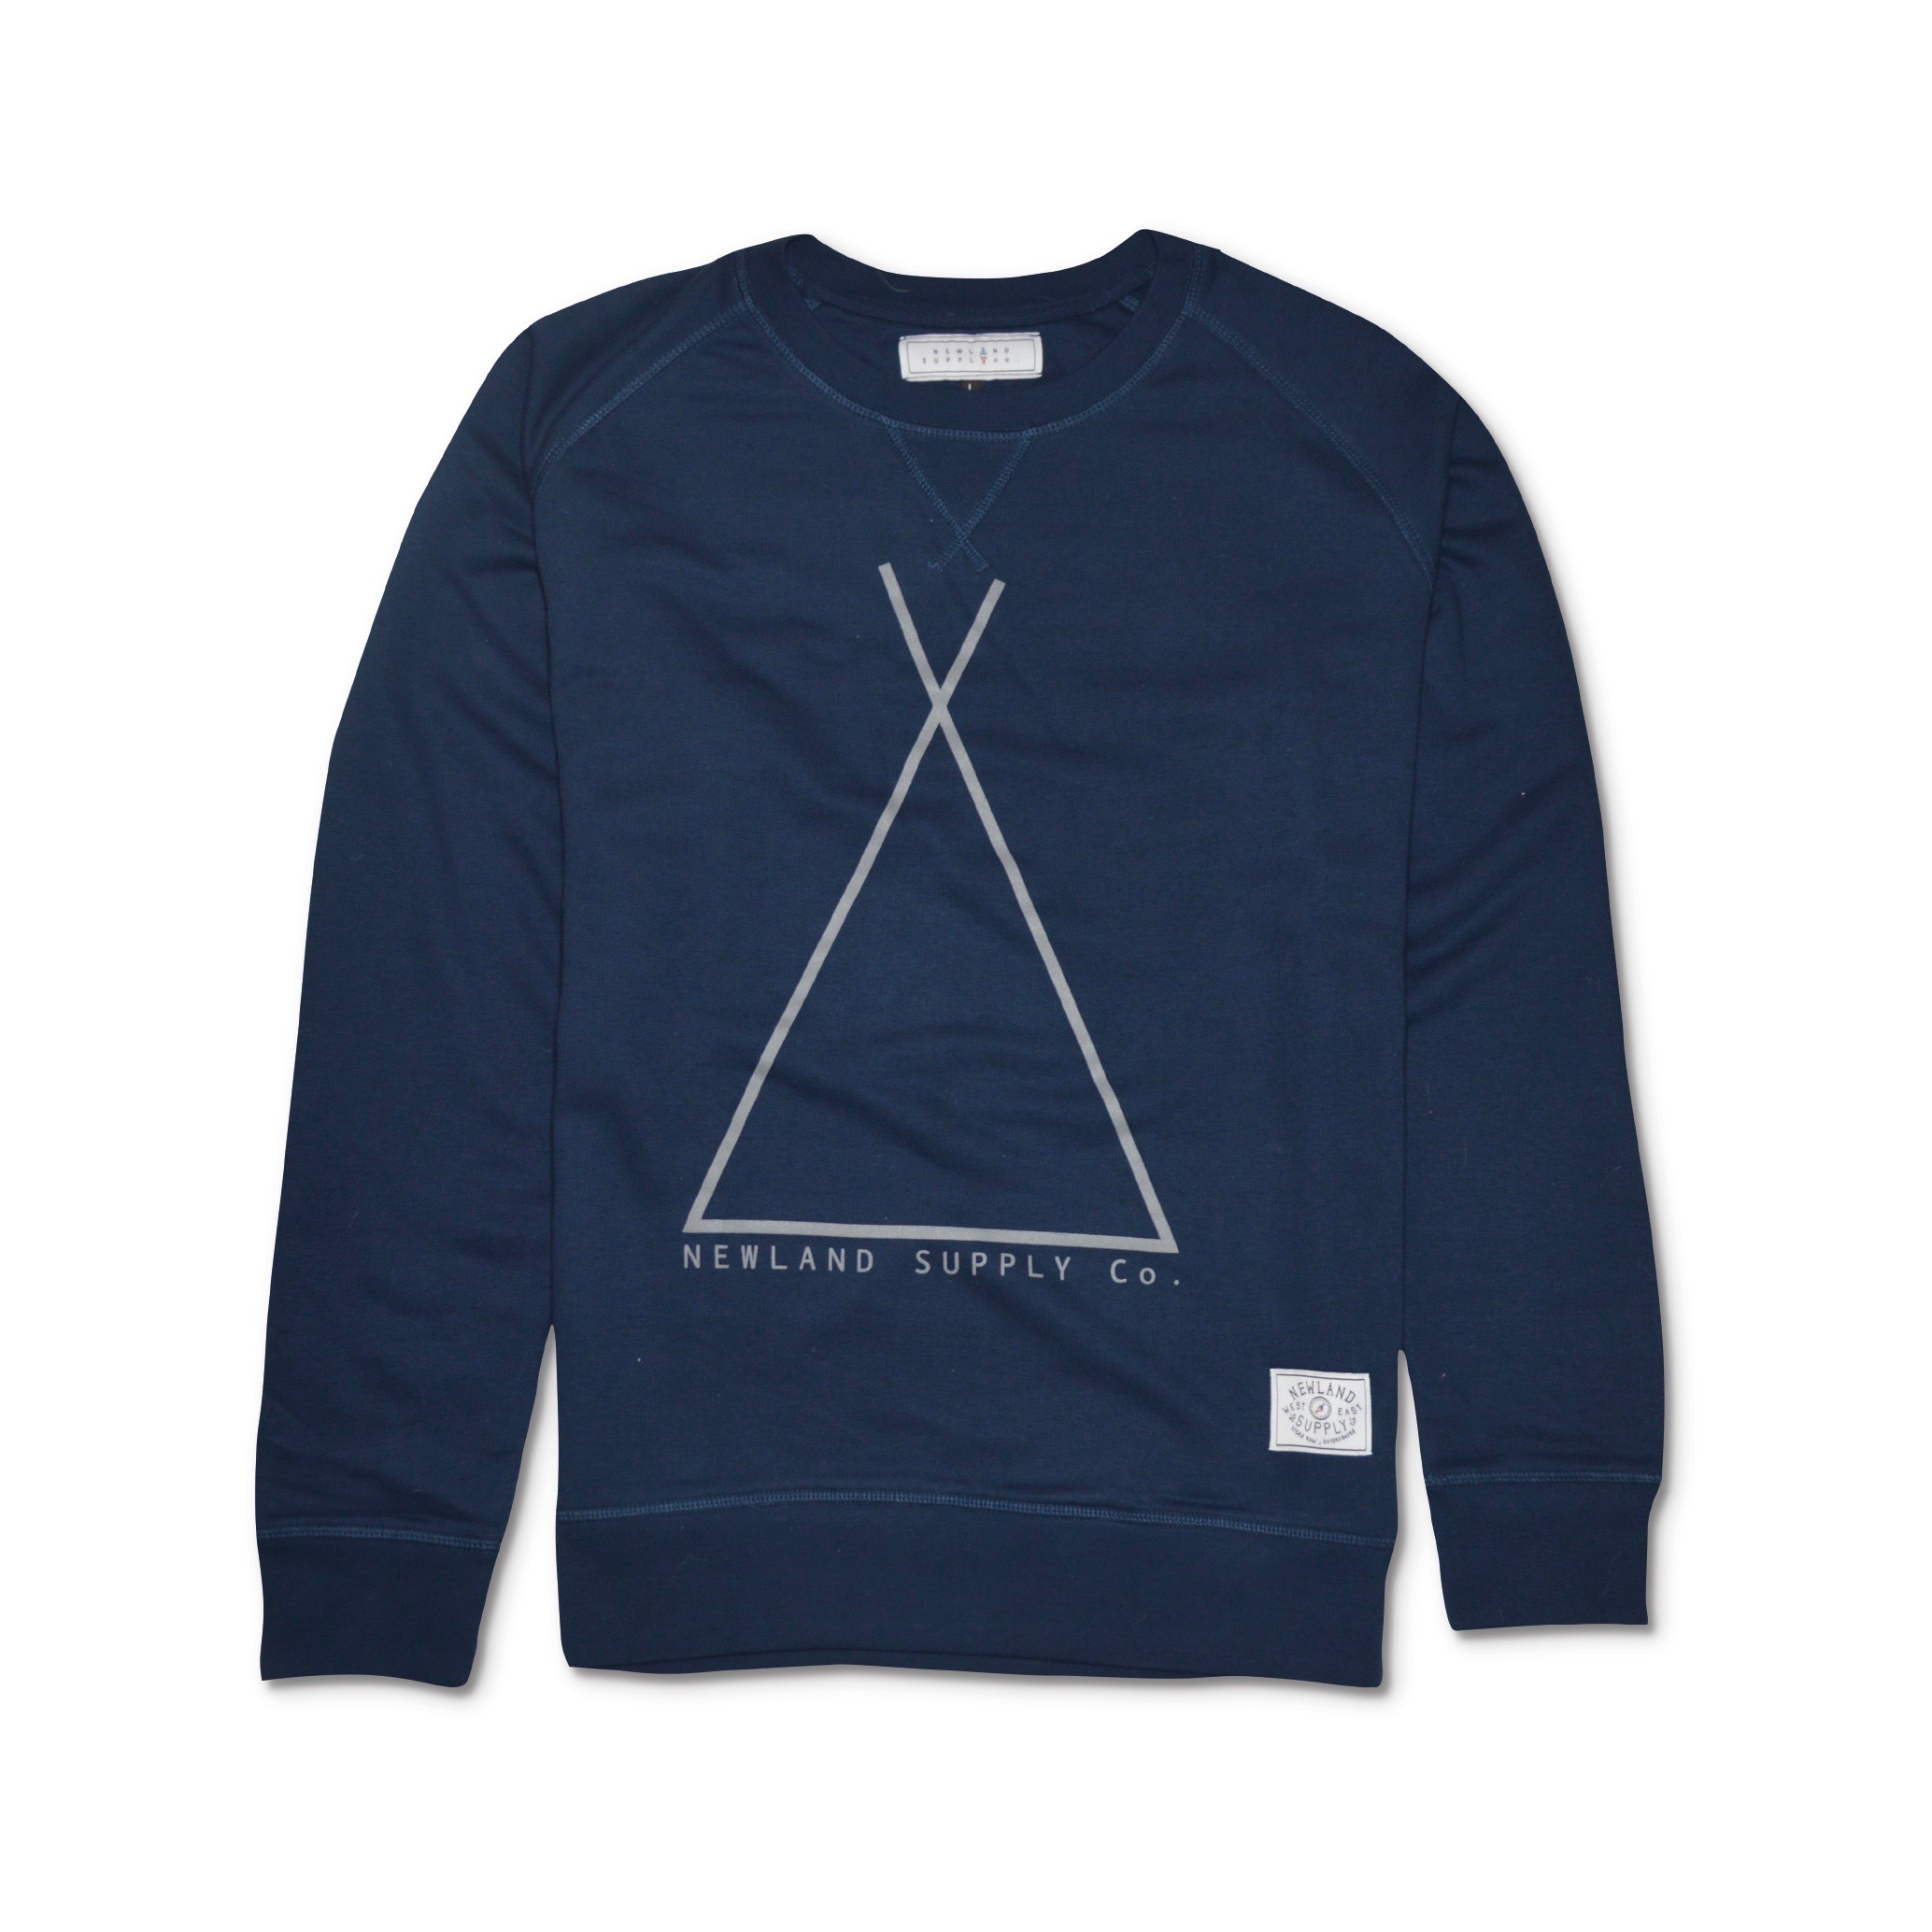 BUSGROVE SWEATSHIRT    By  Newland Supply Co.     Made from organic ring-spun cotton, the Busgrove sweat is perfect as a top layer over a tee or a base layer under a jacket.    SHOP NOW          On Sale - £30